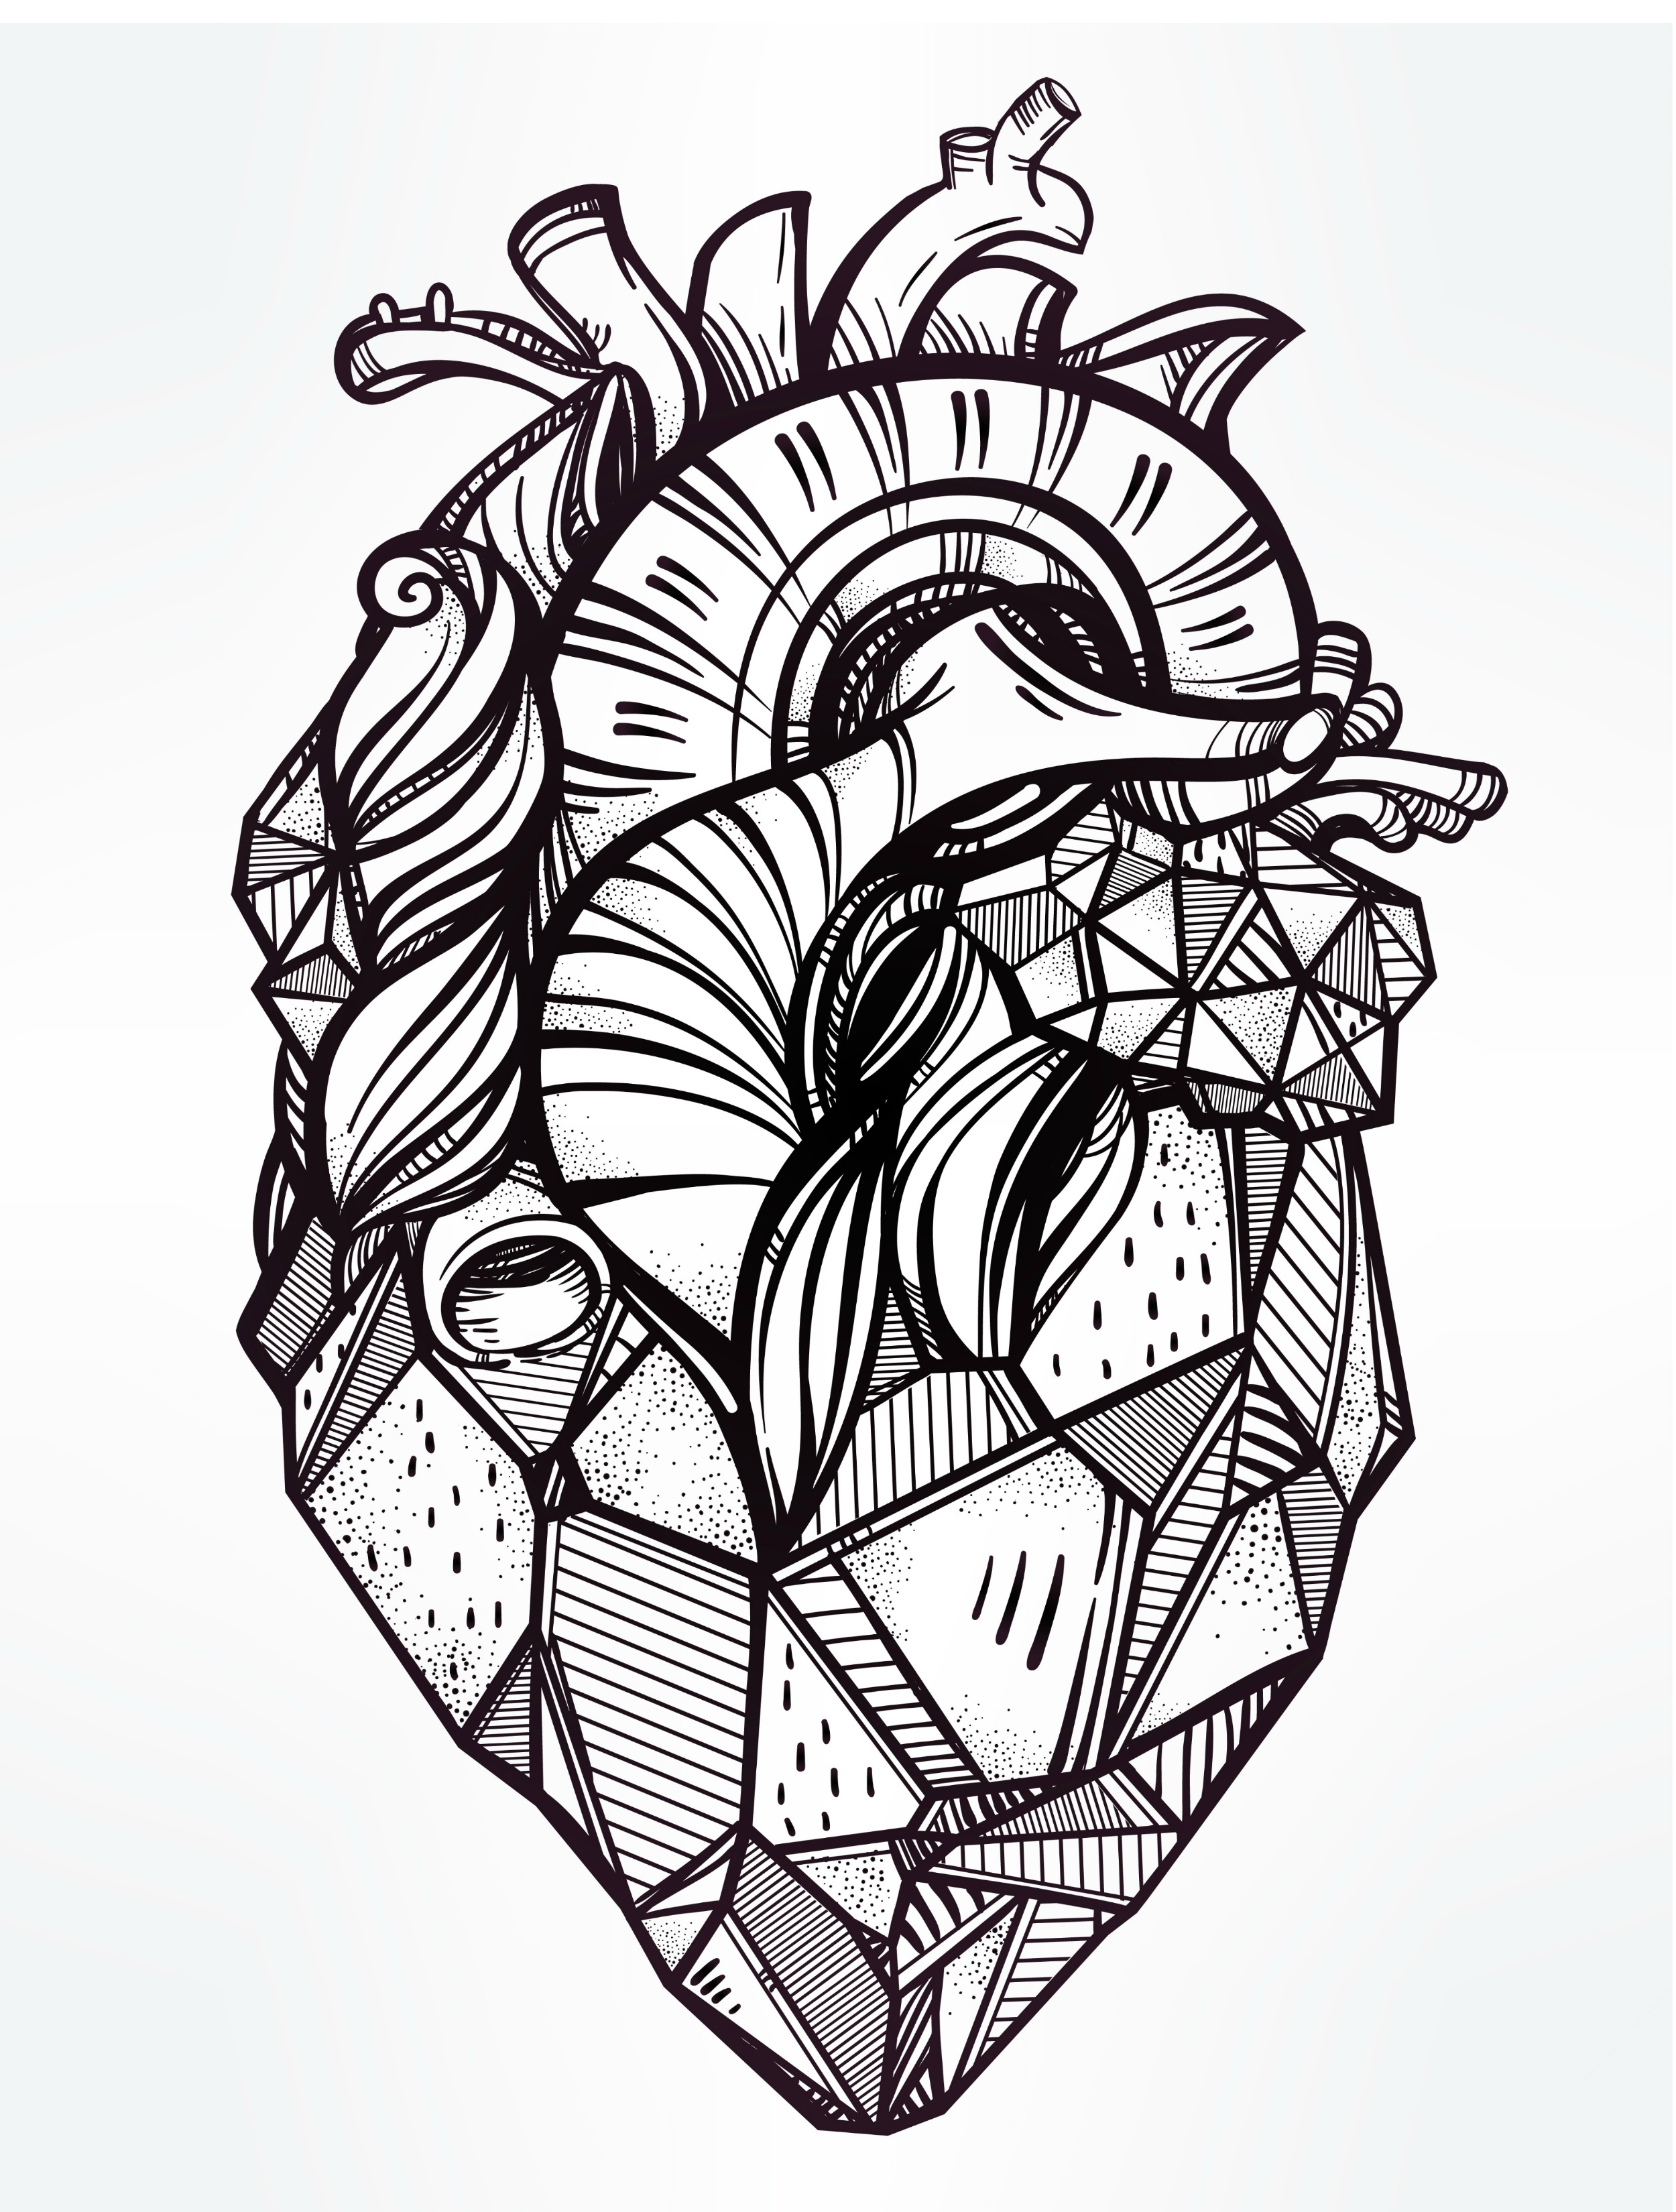 Valentines Day Coloring Pages For Adults 20 Free Printable Valentines Adult Coloring Pages Nerdy Mamma